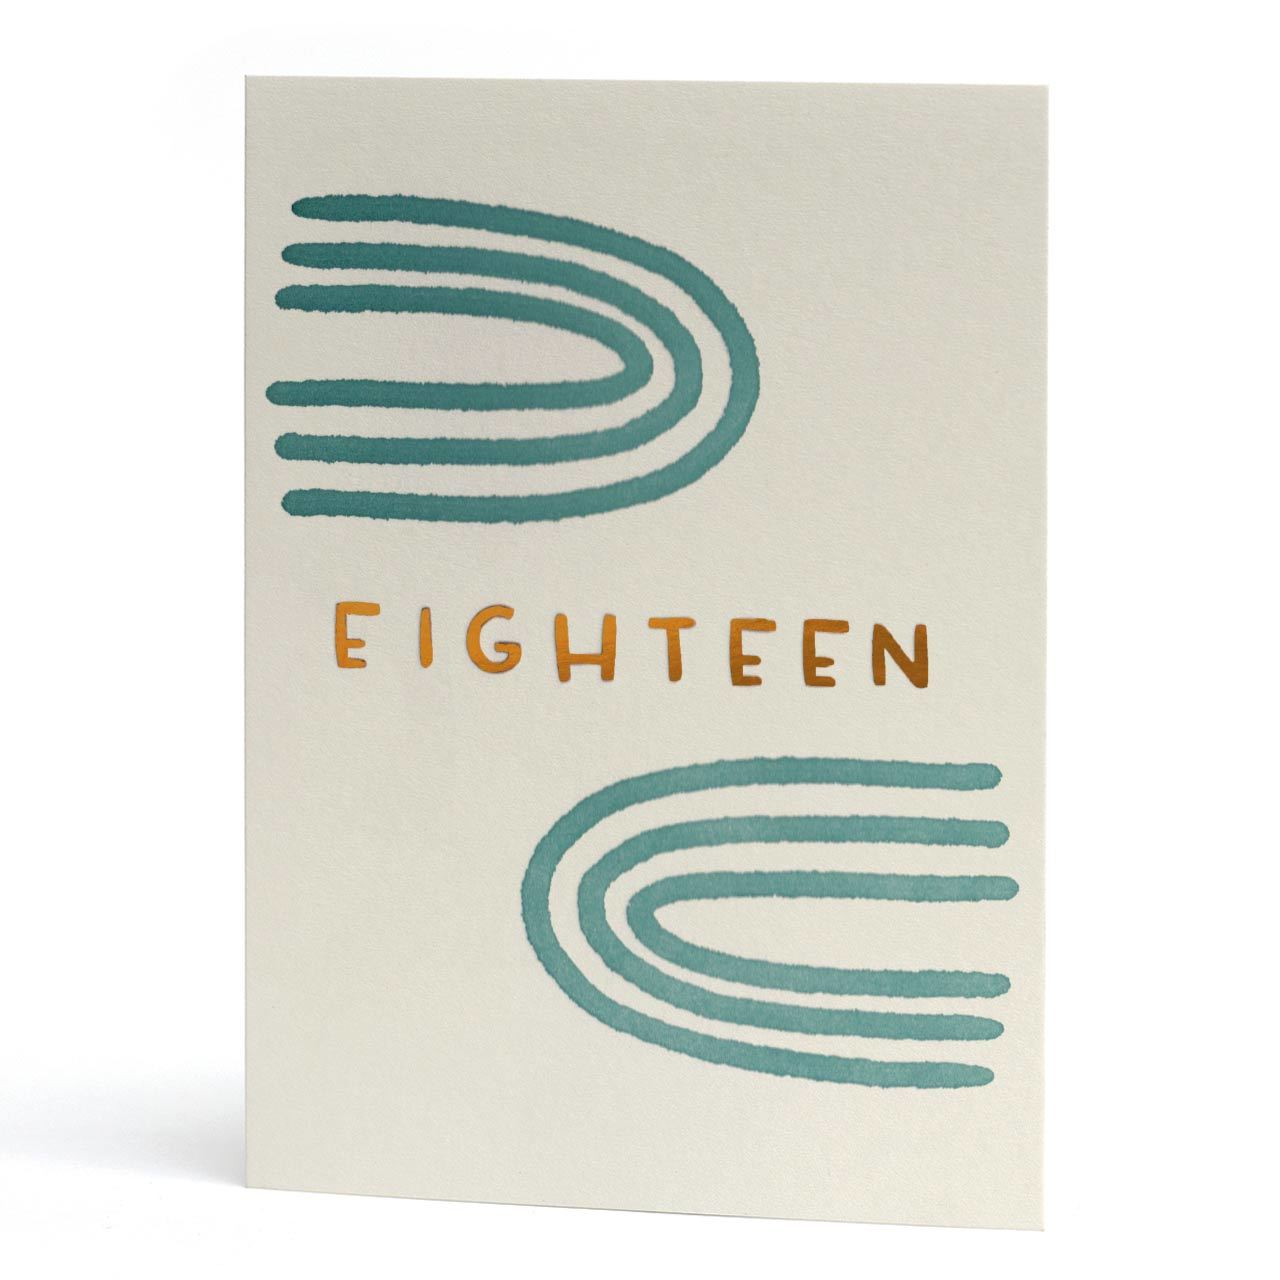 Eighteen Copper Foil Letterpress Birthday Card